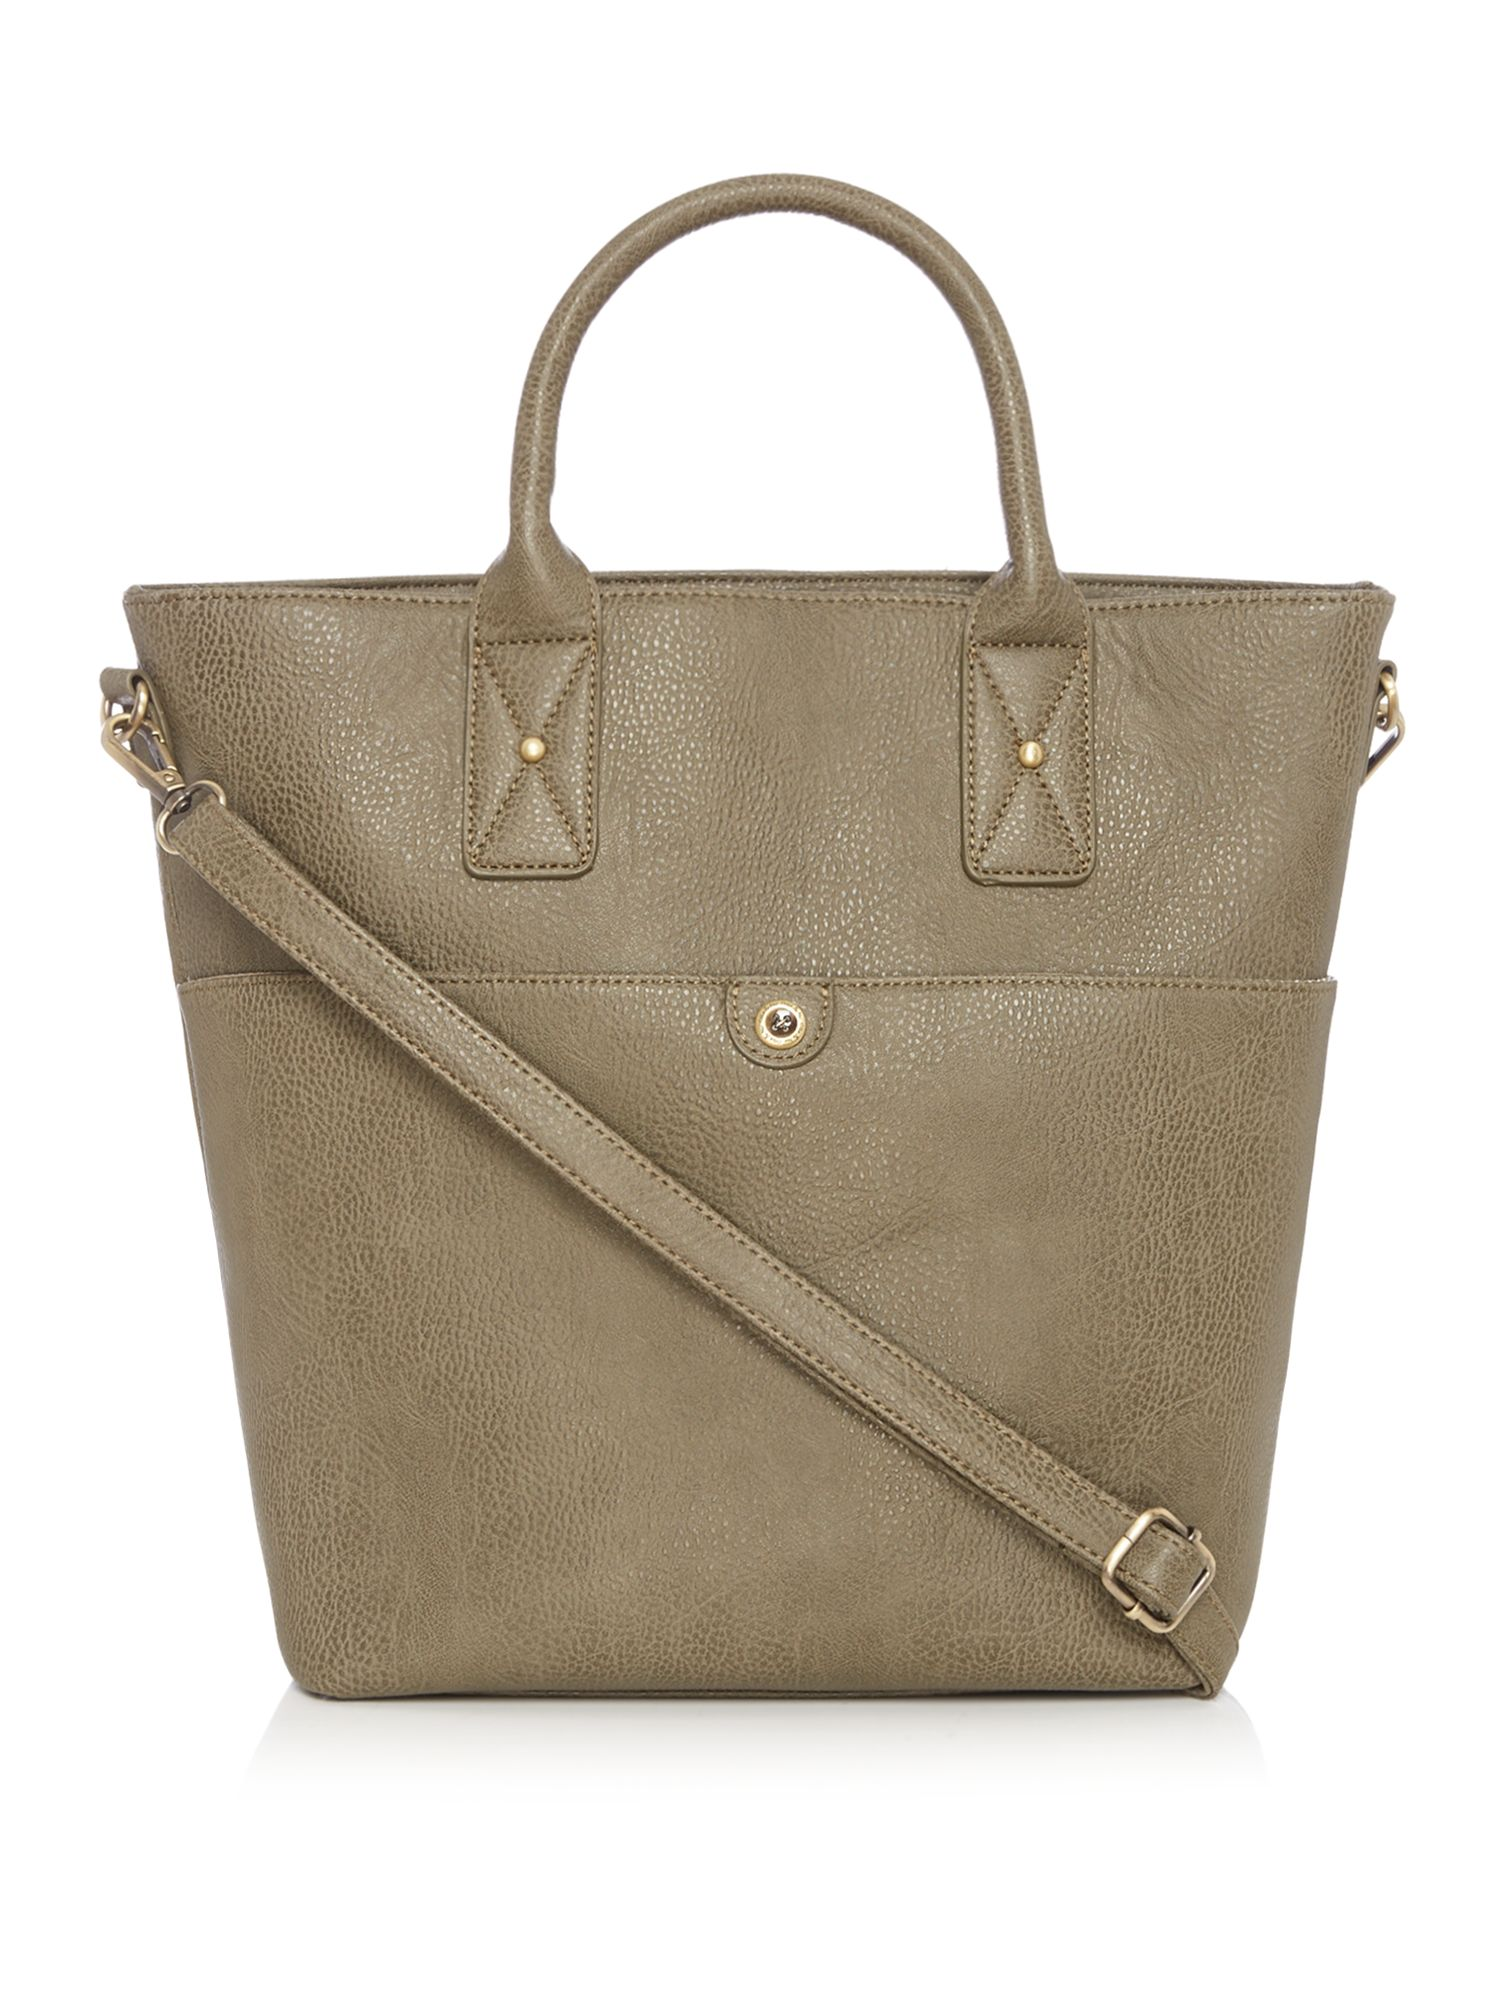 Ollie & Nic Nora Tote Bag, Olive